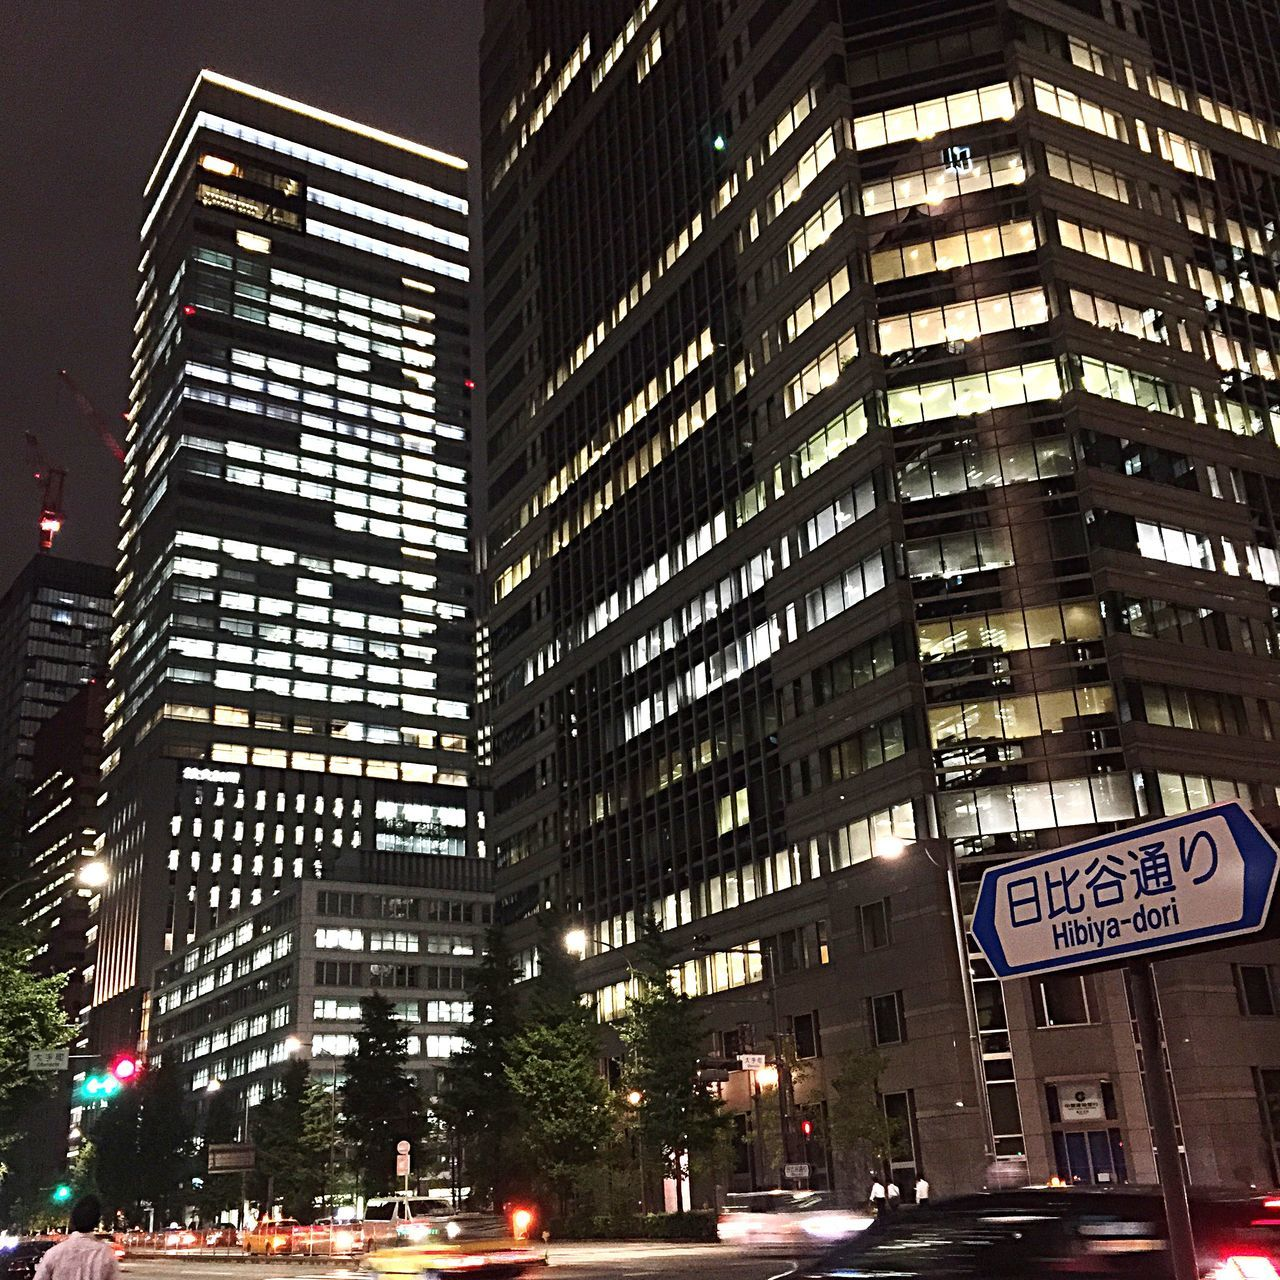 architecture, building exterior, built structure, skyscraper, city, illuminated, night, car, modern, city life, low angle view, outdoors, no people, tree, sky